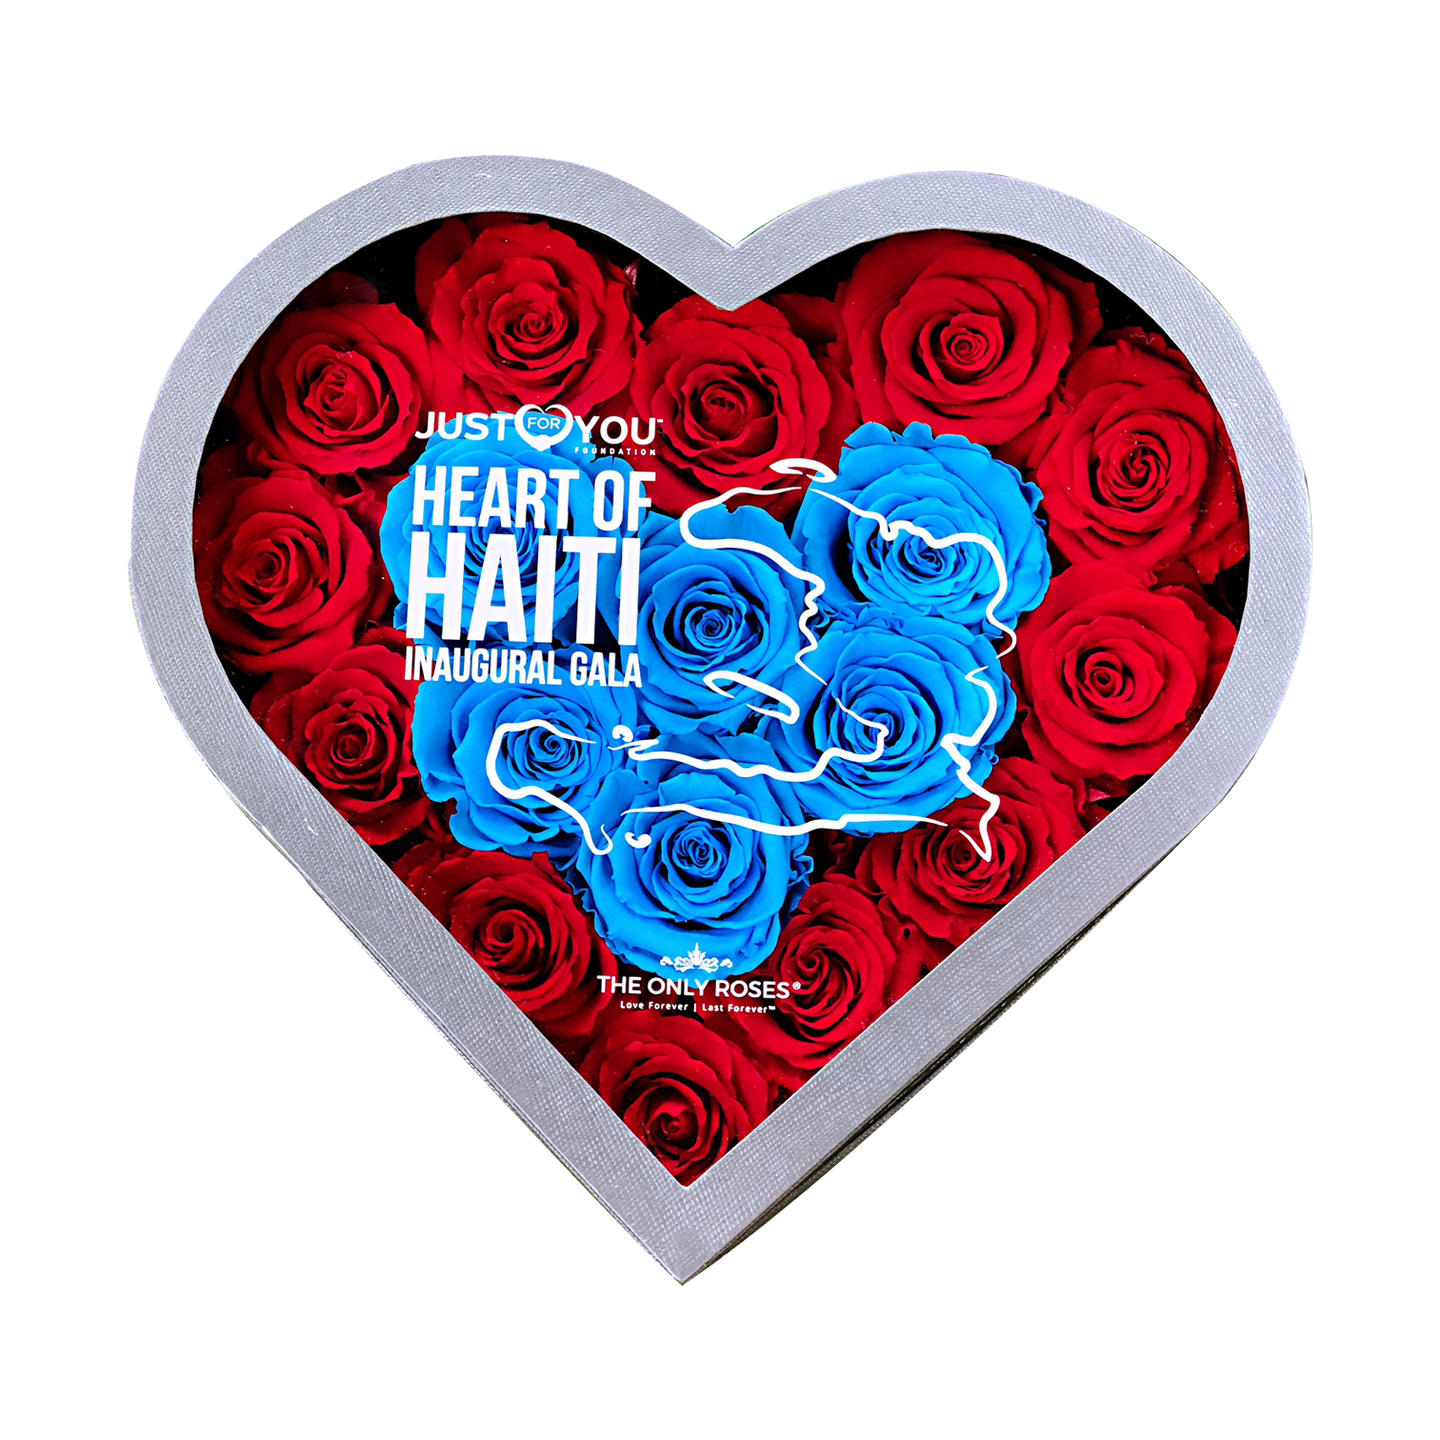 JUST FOR YOUR FOUNDATION | Heart of Haiti Gala Invitation Gift | MEDIUM HEART CLASSIC GREY BOX